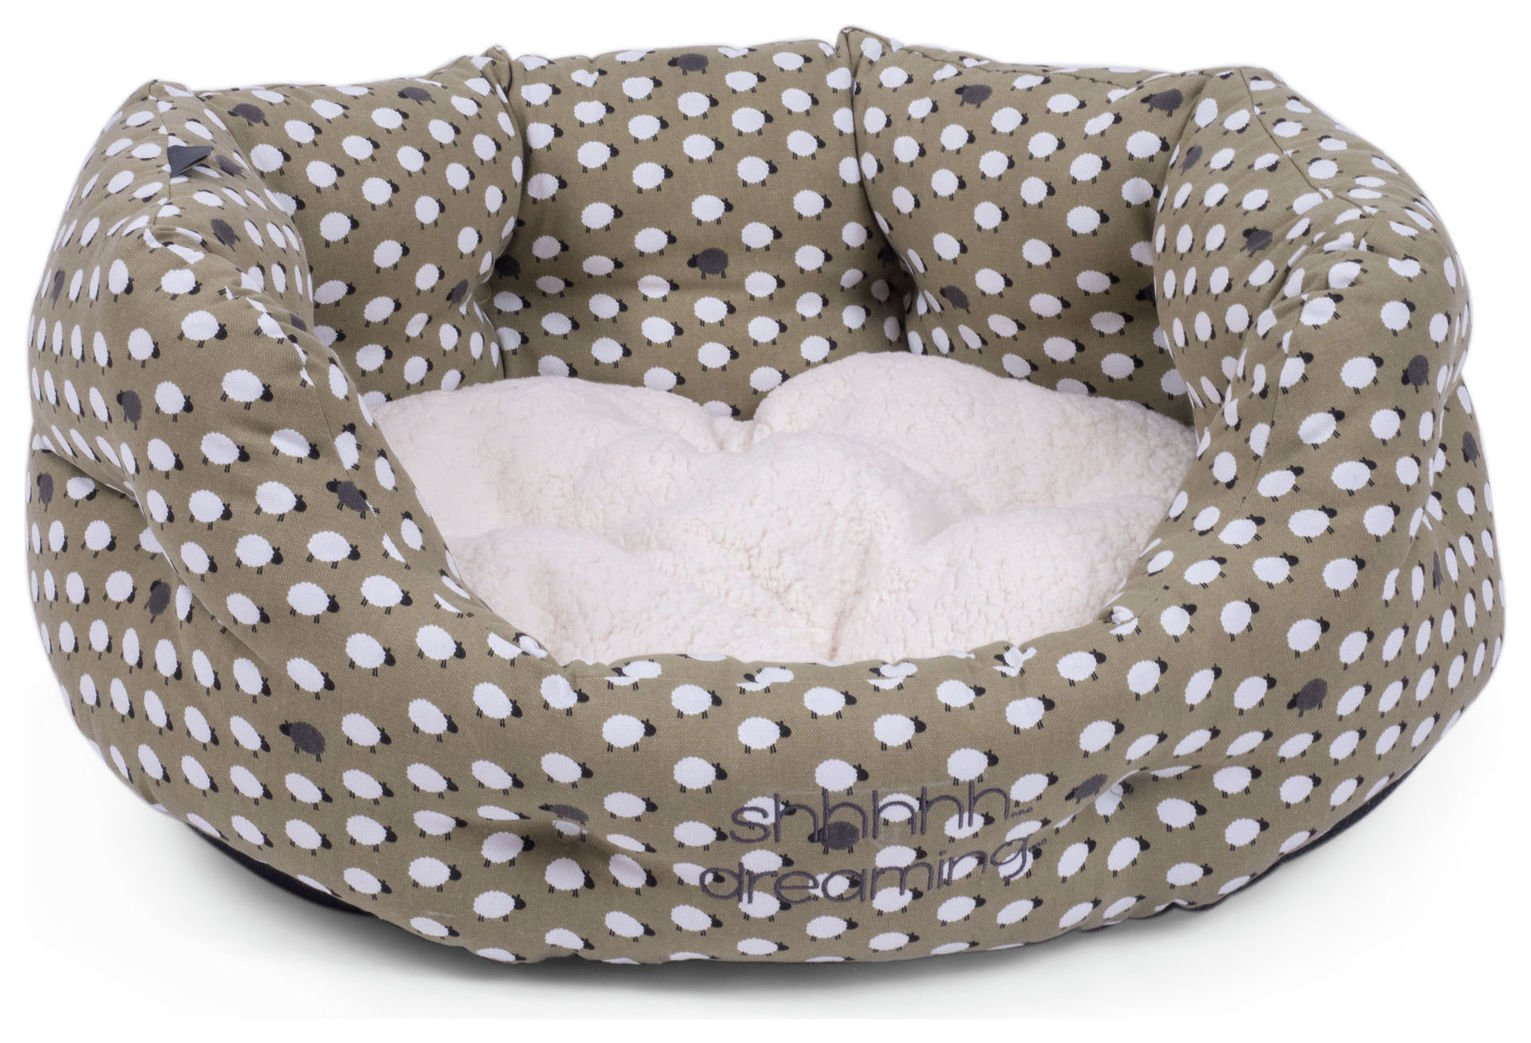 Petface Sheep Oval Bed - Extra Large